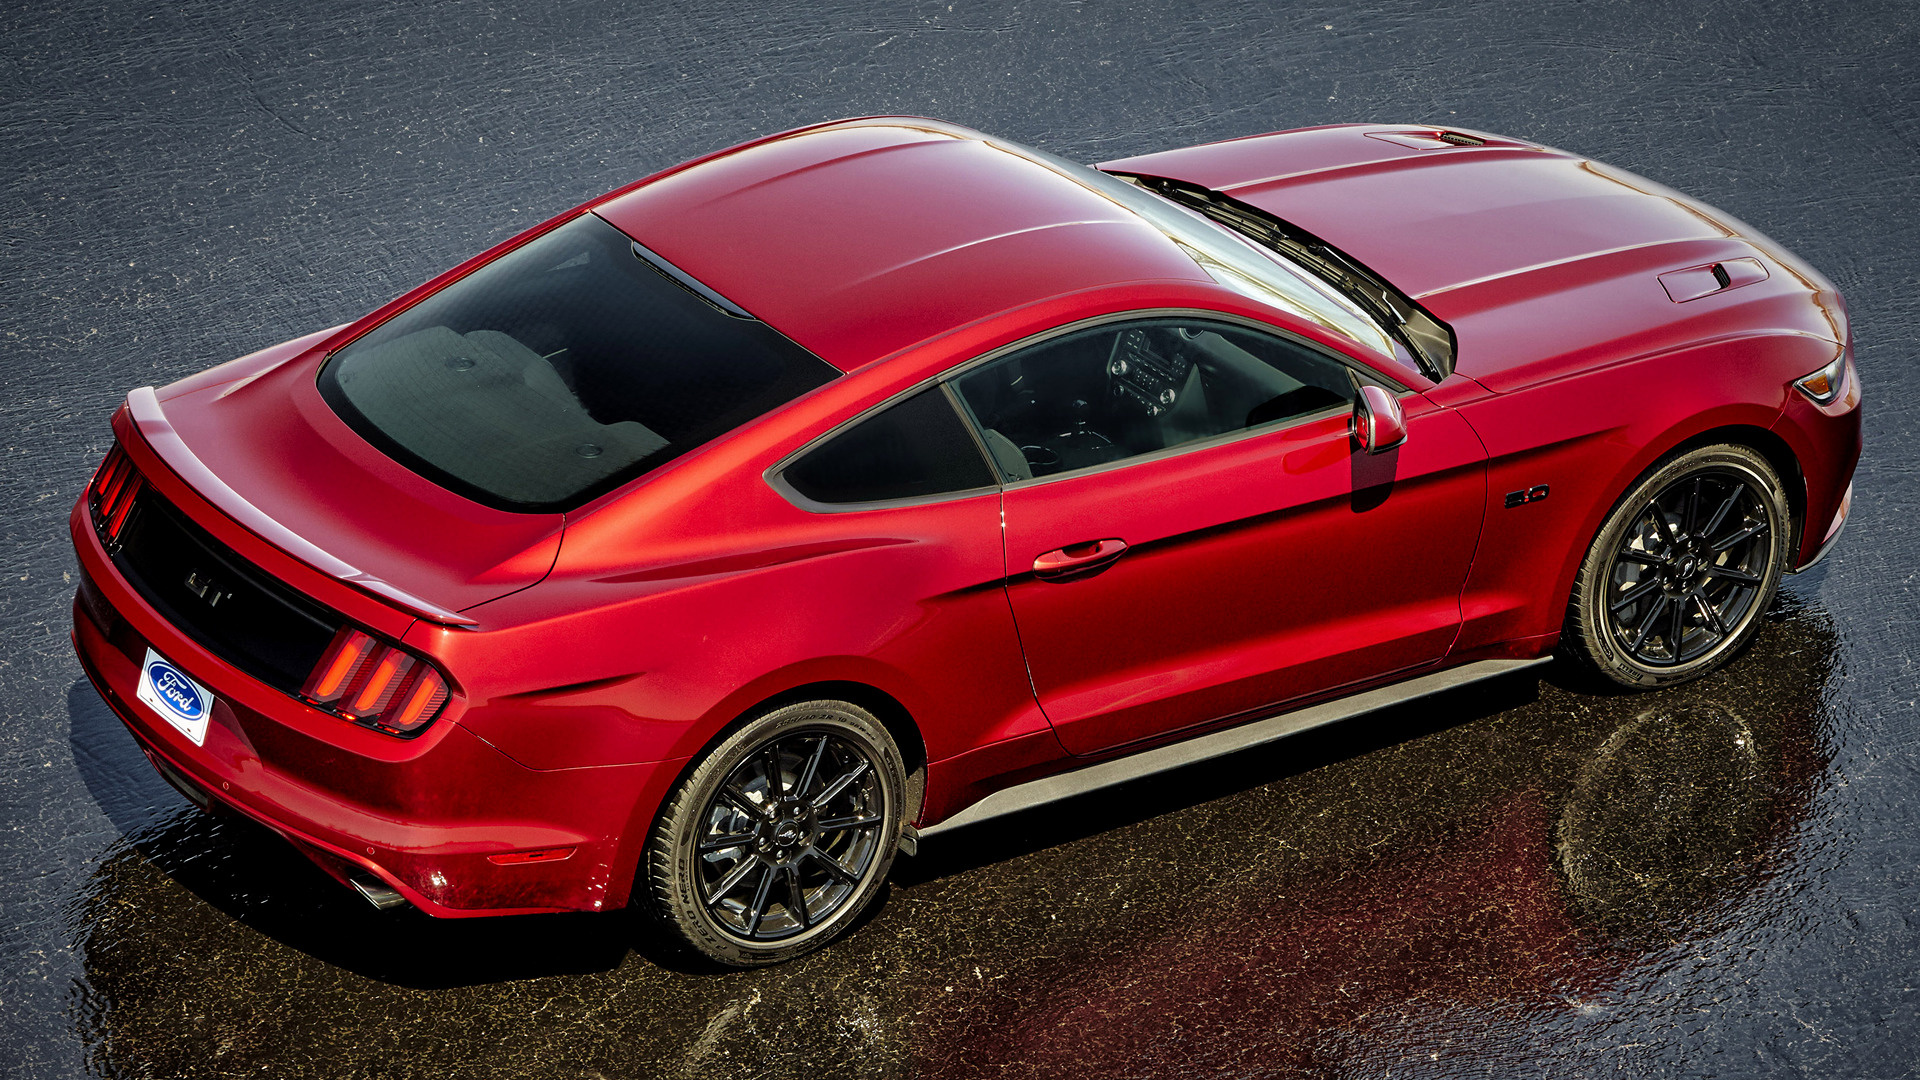 mustang ford gt accent hd wallpapers vs cars comparison wallpapersafari poll iphone carscoops code